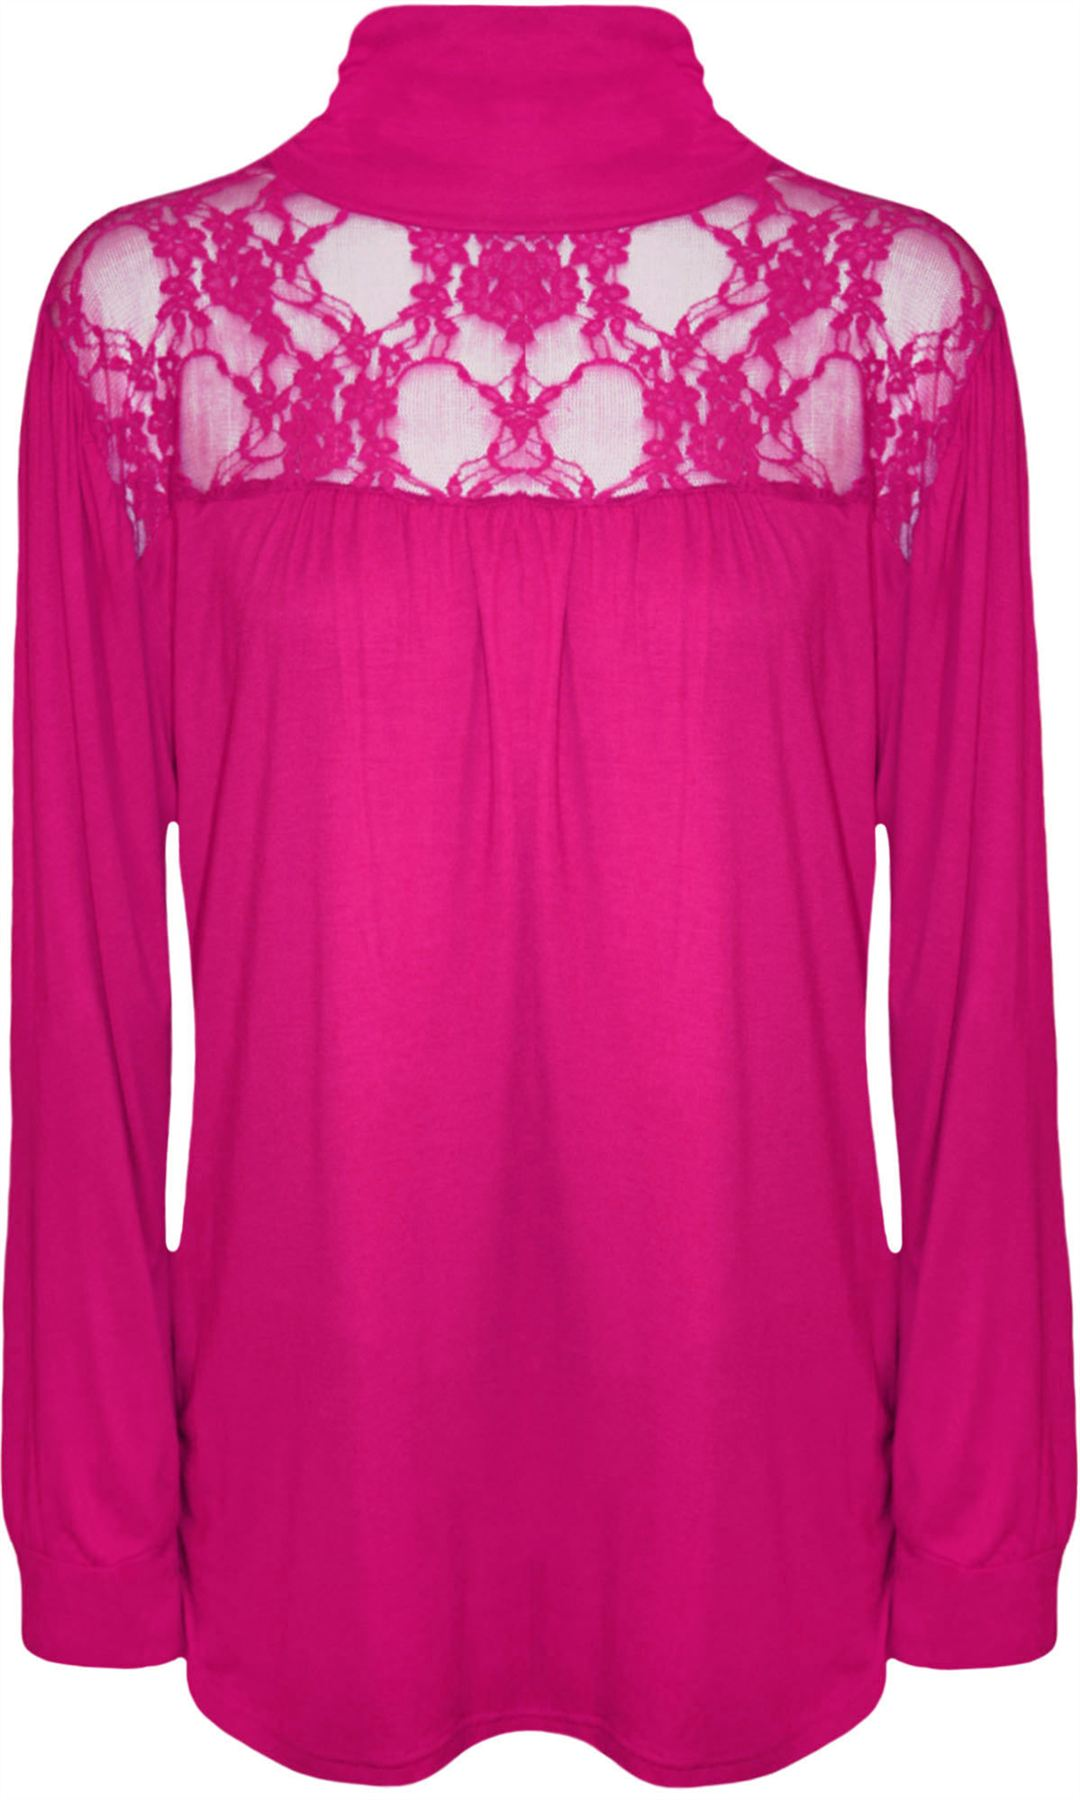 c0e08788d71 Womens Ladies Polo Neck Lace Turtle Long Sleeve Stretch Plus Size Tops  Dress Cerise UK 14. About this product. Picture 1 of 2  Picture 2 of 2